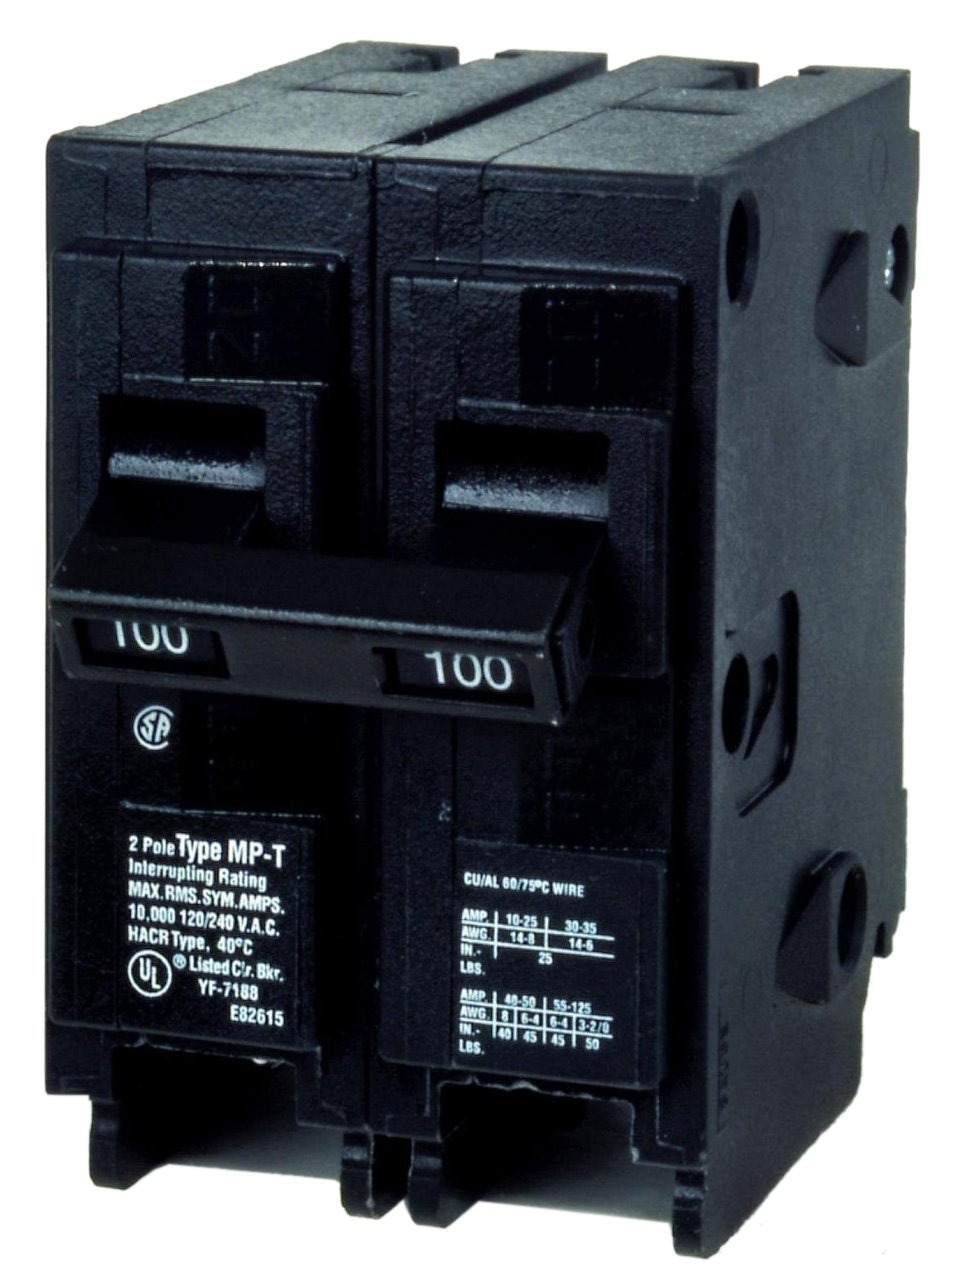 Murray MP2100ST 120/240-Volt type MP-T 100-Amp Circuit Breaker with 120-Volt Shunt Trip Double pole